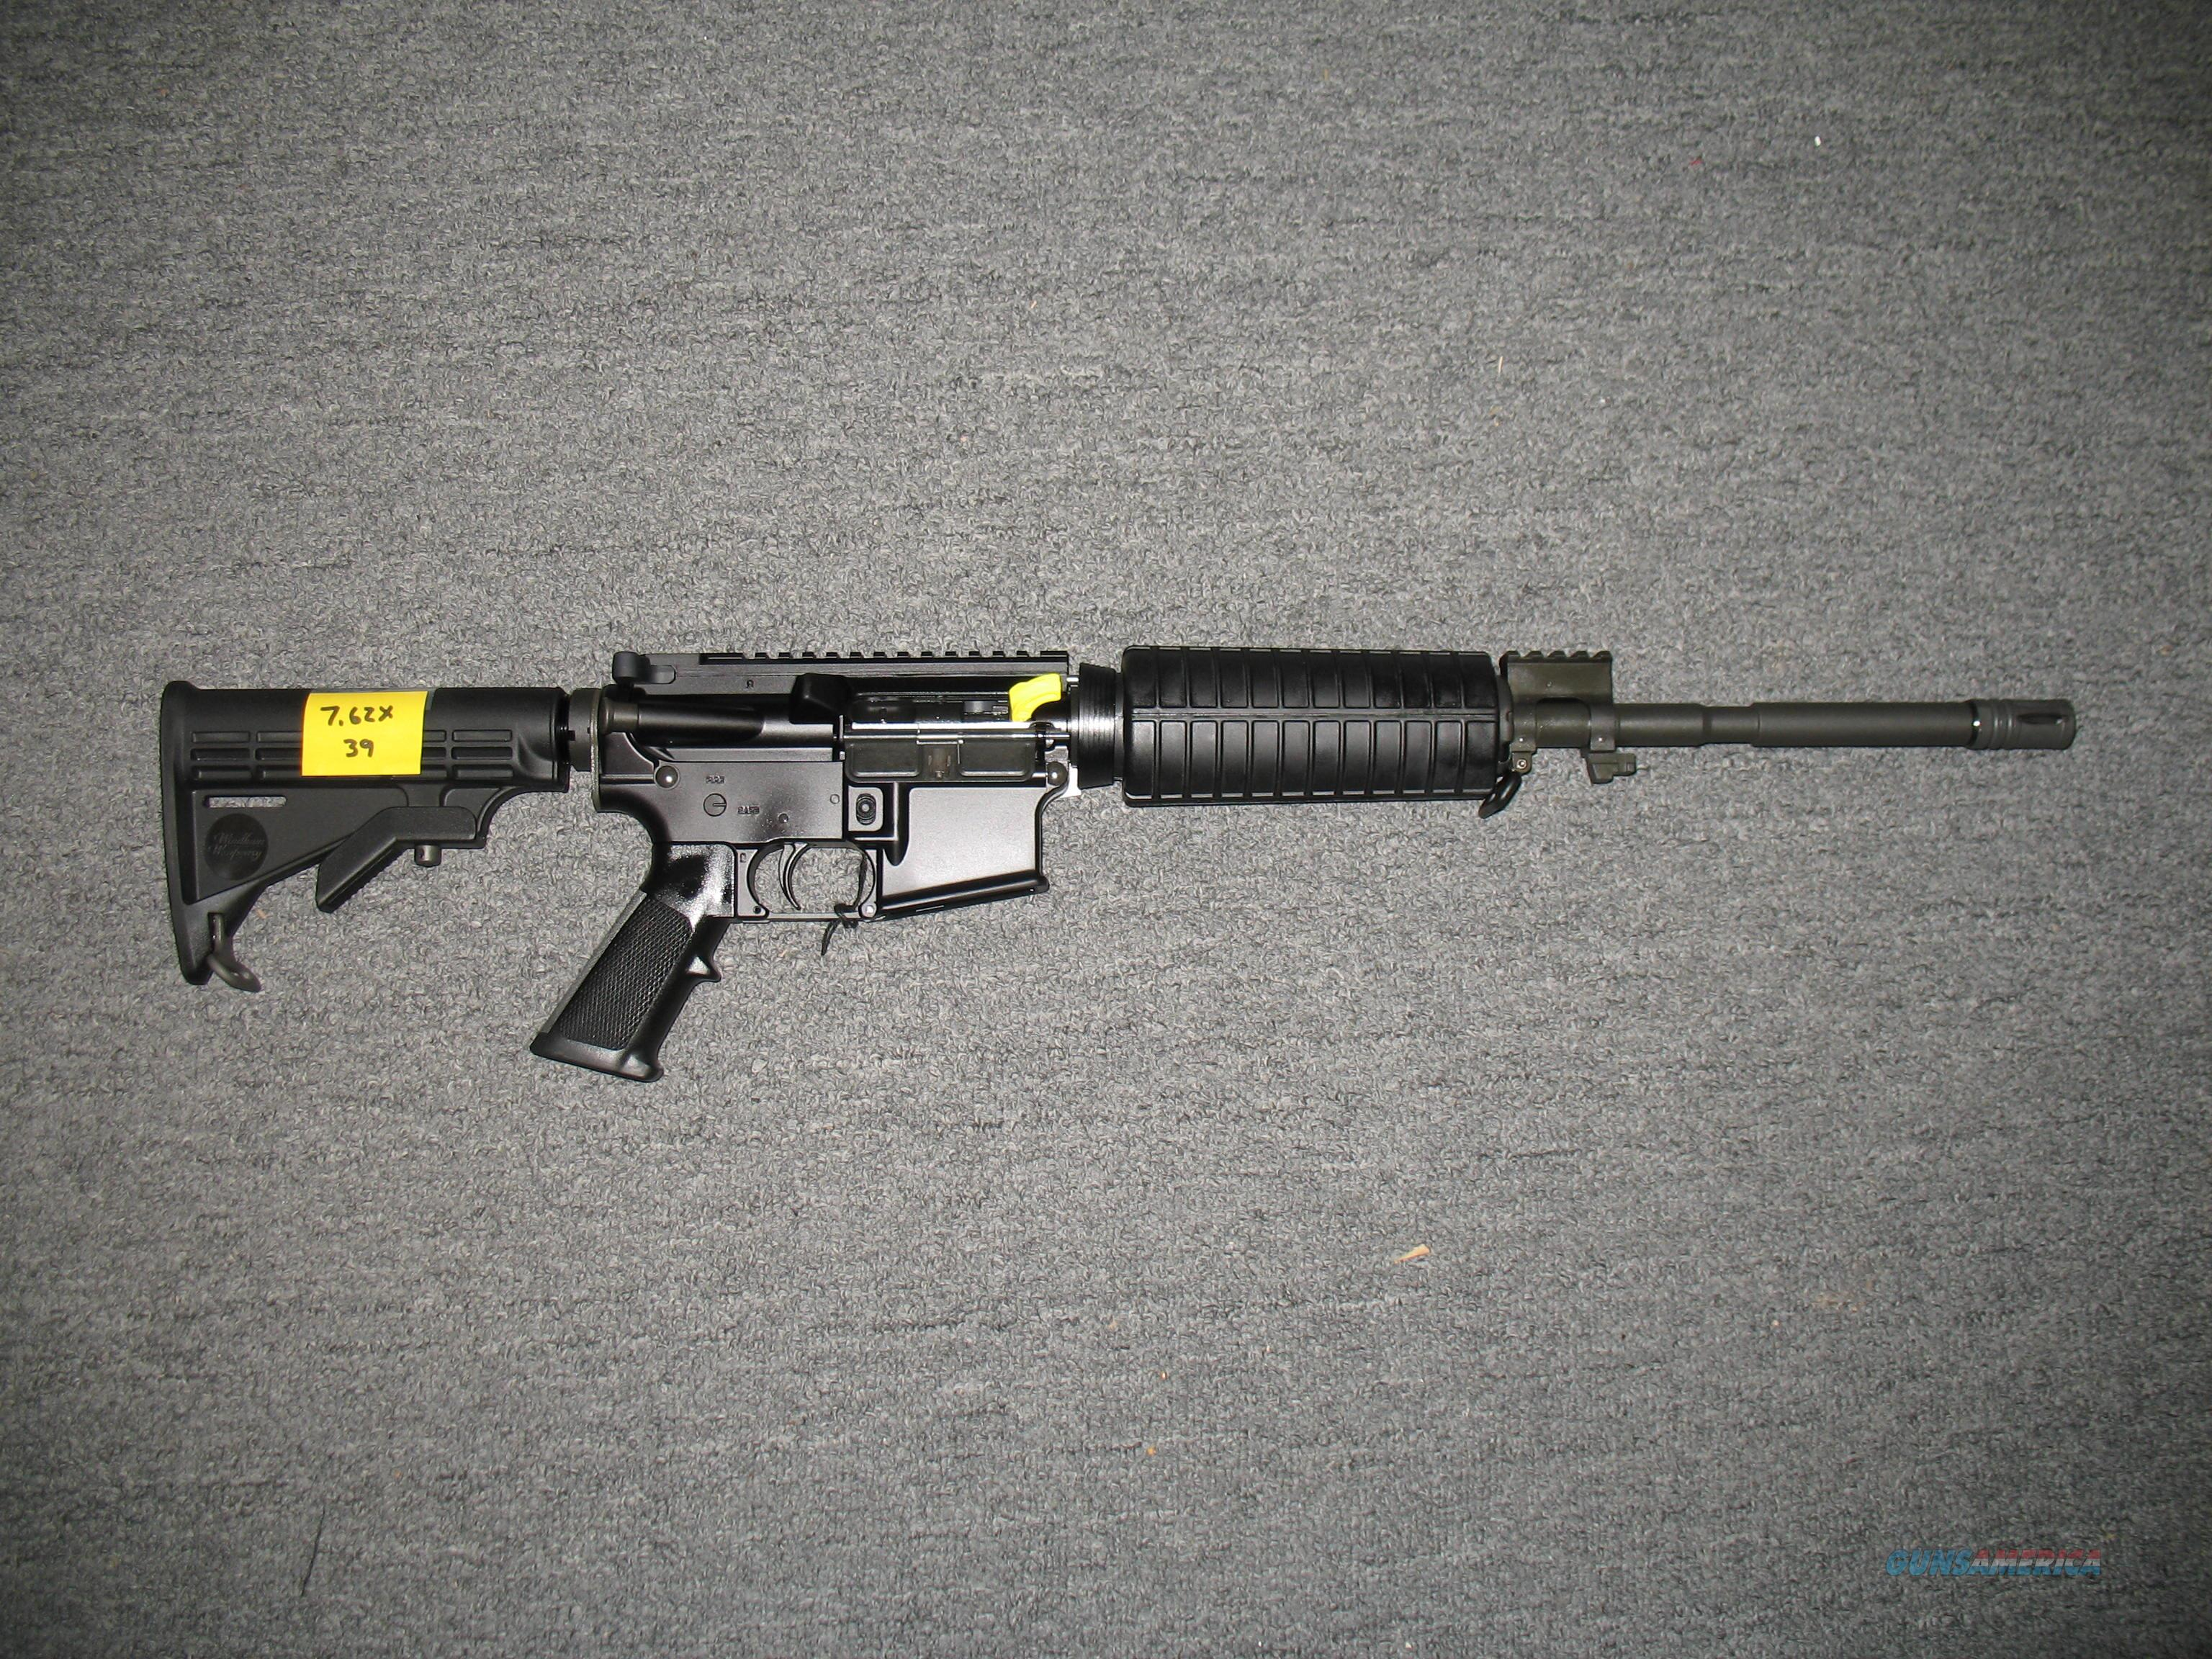 Windham Weaponry WW-16 7.62x39  Guns > Rifles > AR-15 Rifles - Small Manufacturers > Complete Rifle